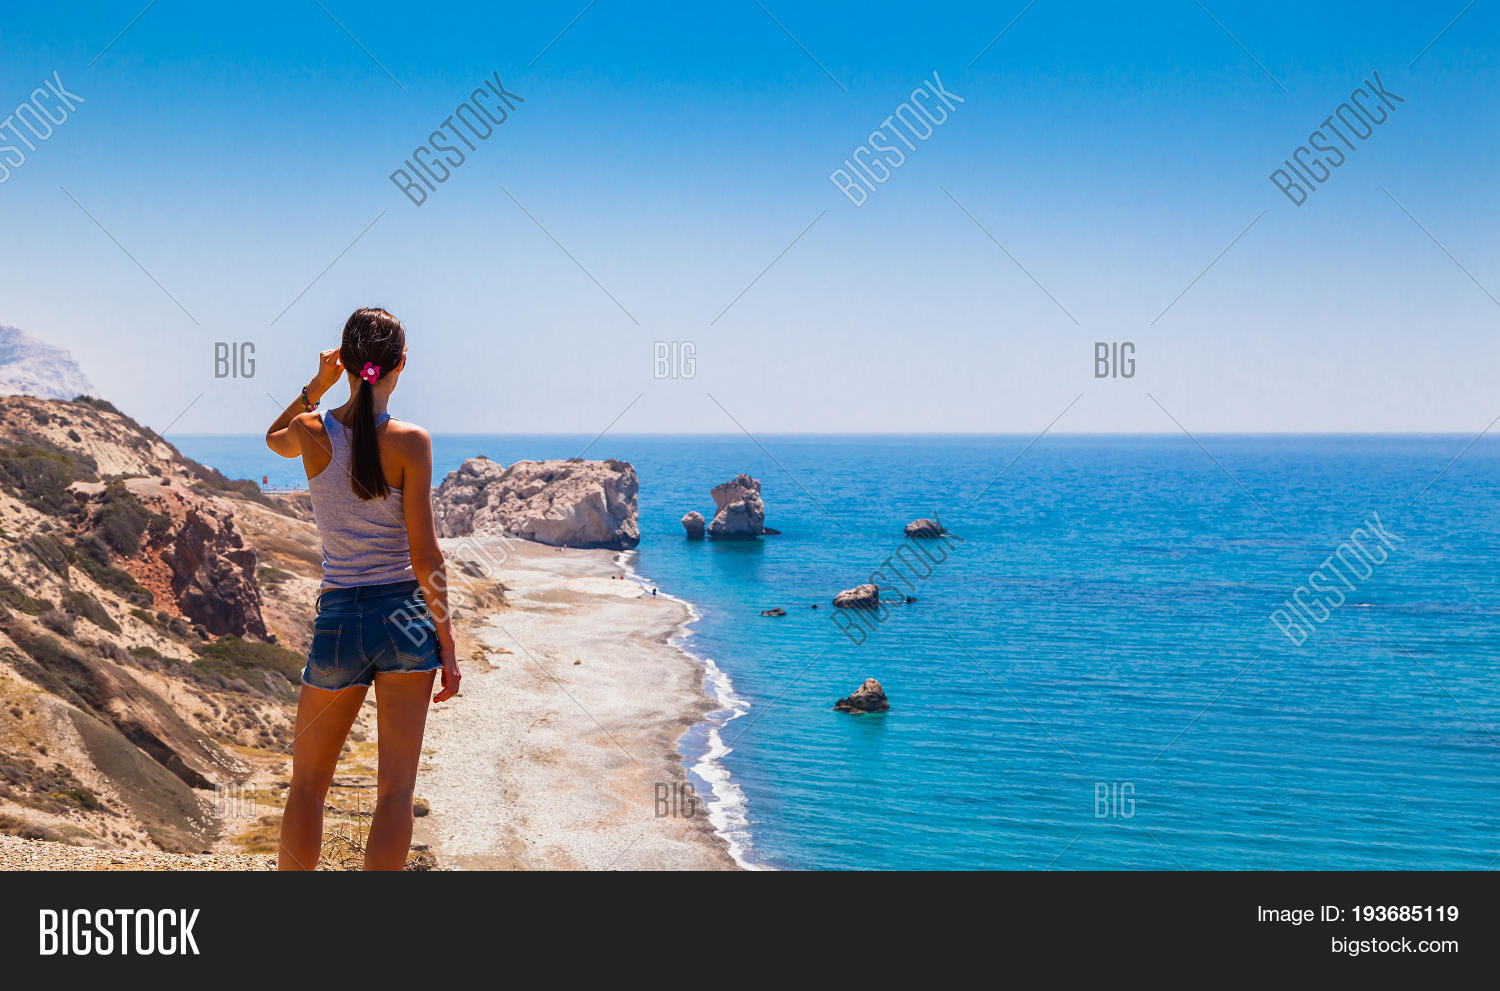 aphrodite,attraction,bay,beach,beautiful,birthplace,blue,cape,clear,coast,cyprian,cyprus,destination,europe,famous,foam,goddess,greek,green,historical,history,holiday,island,landscape,legend,mediterranean,myth,mythology,nature,pagan,panorama,paphos,paradise,people,petra,place,popular,rock,romiou,sea,sight,summer,symbol,tourism,travel,turquoise,vacation,view,water,woman